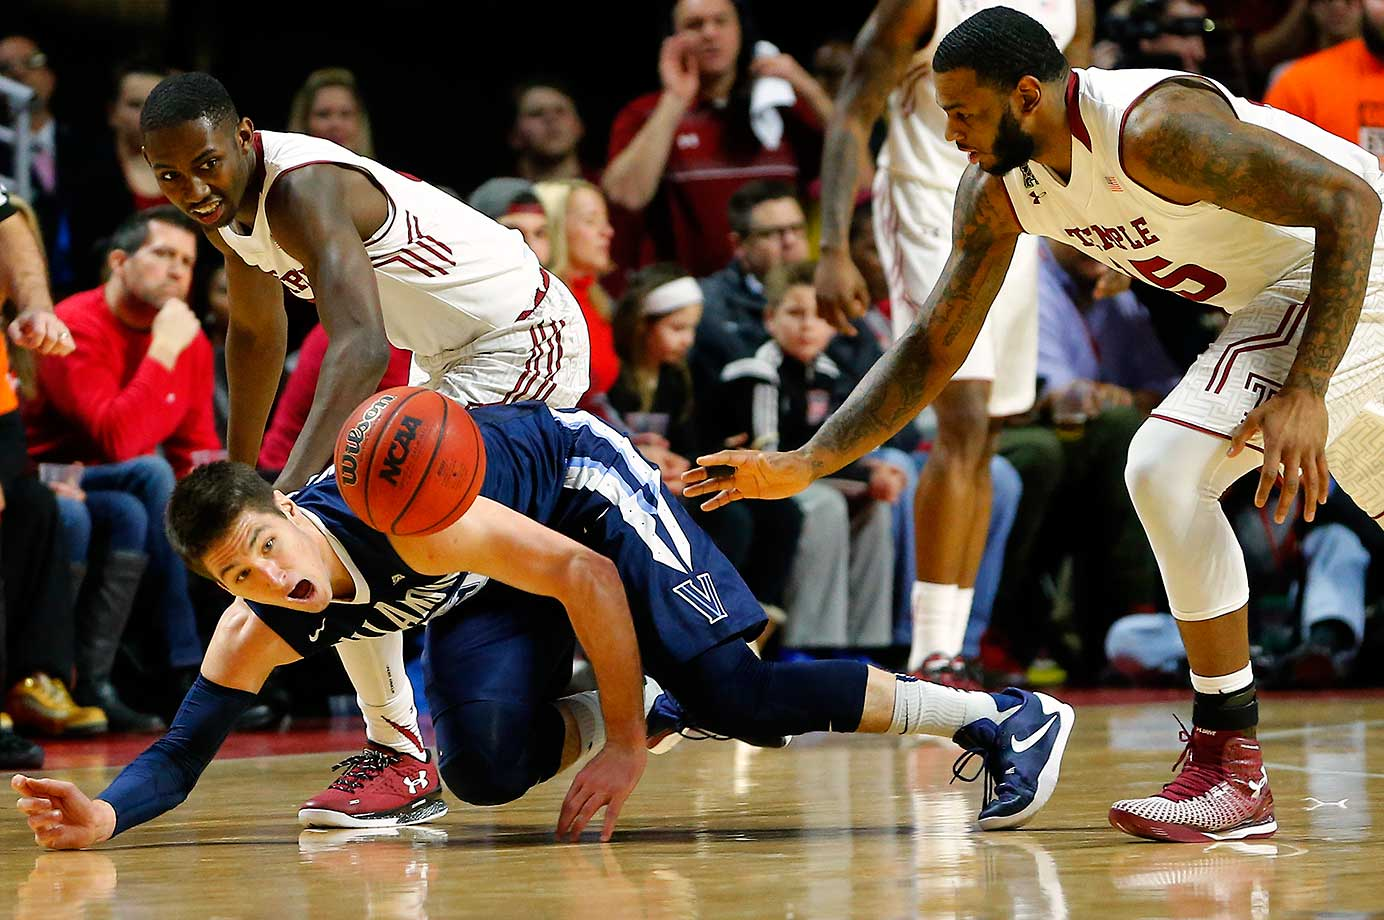 Ryan Arcidiacono of Villanova attempts to regain possession of the ball as Temple's Levan Shawn Alston, Jr. (No. 3) and Jaylen Bond defend.